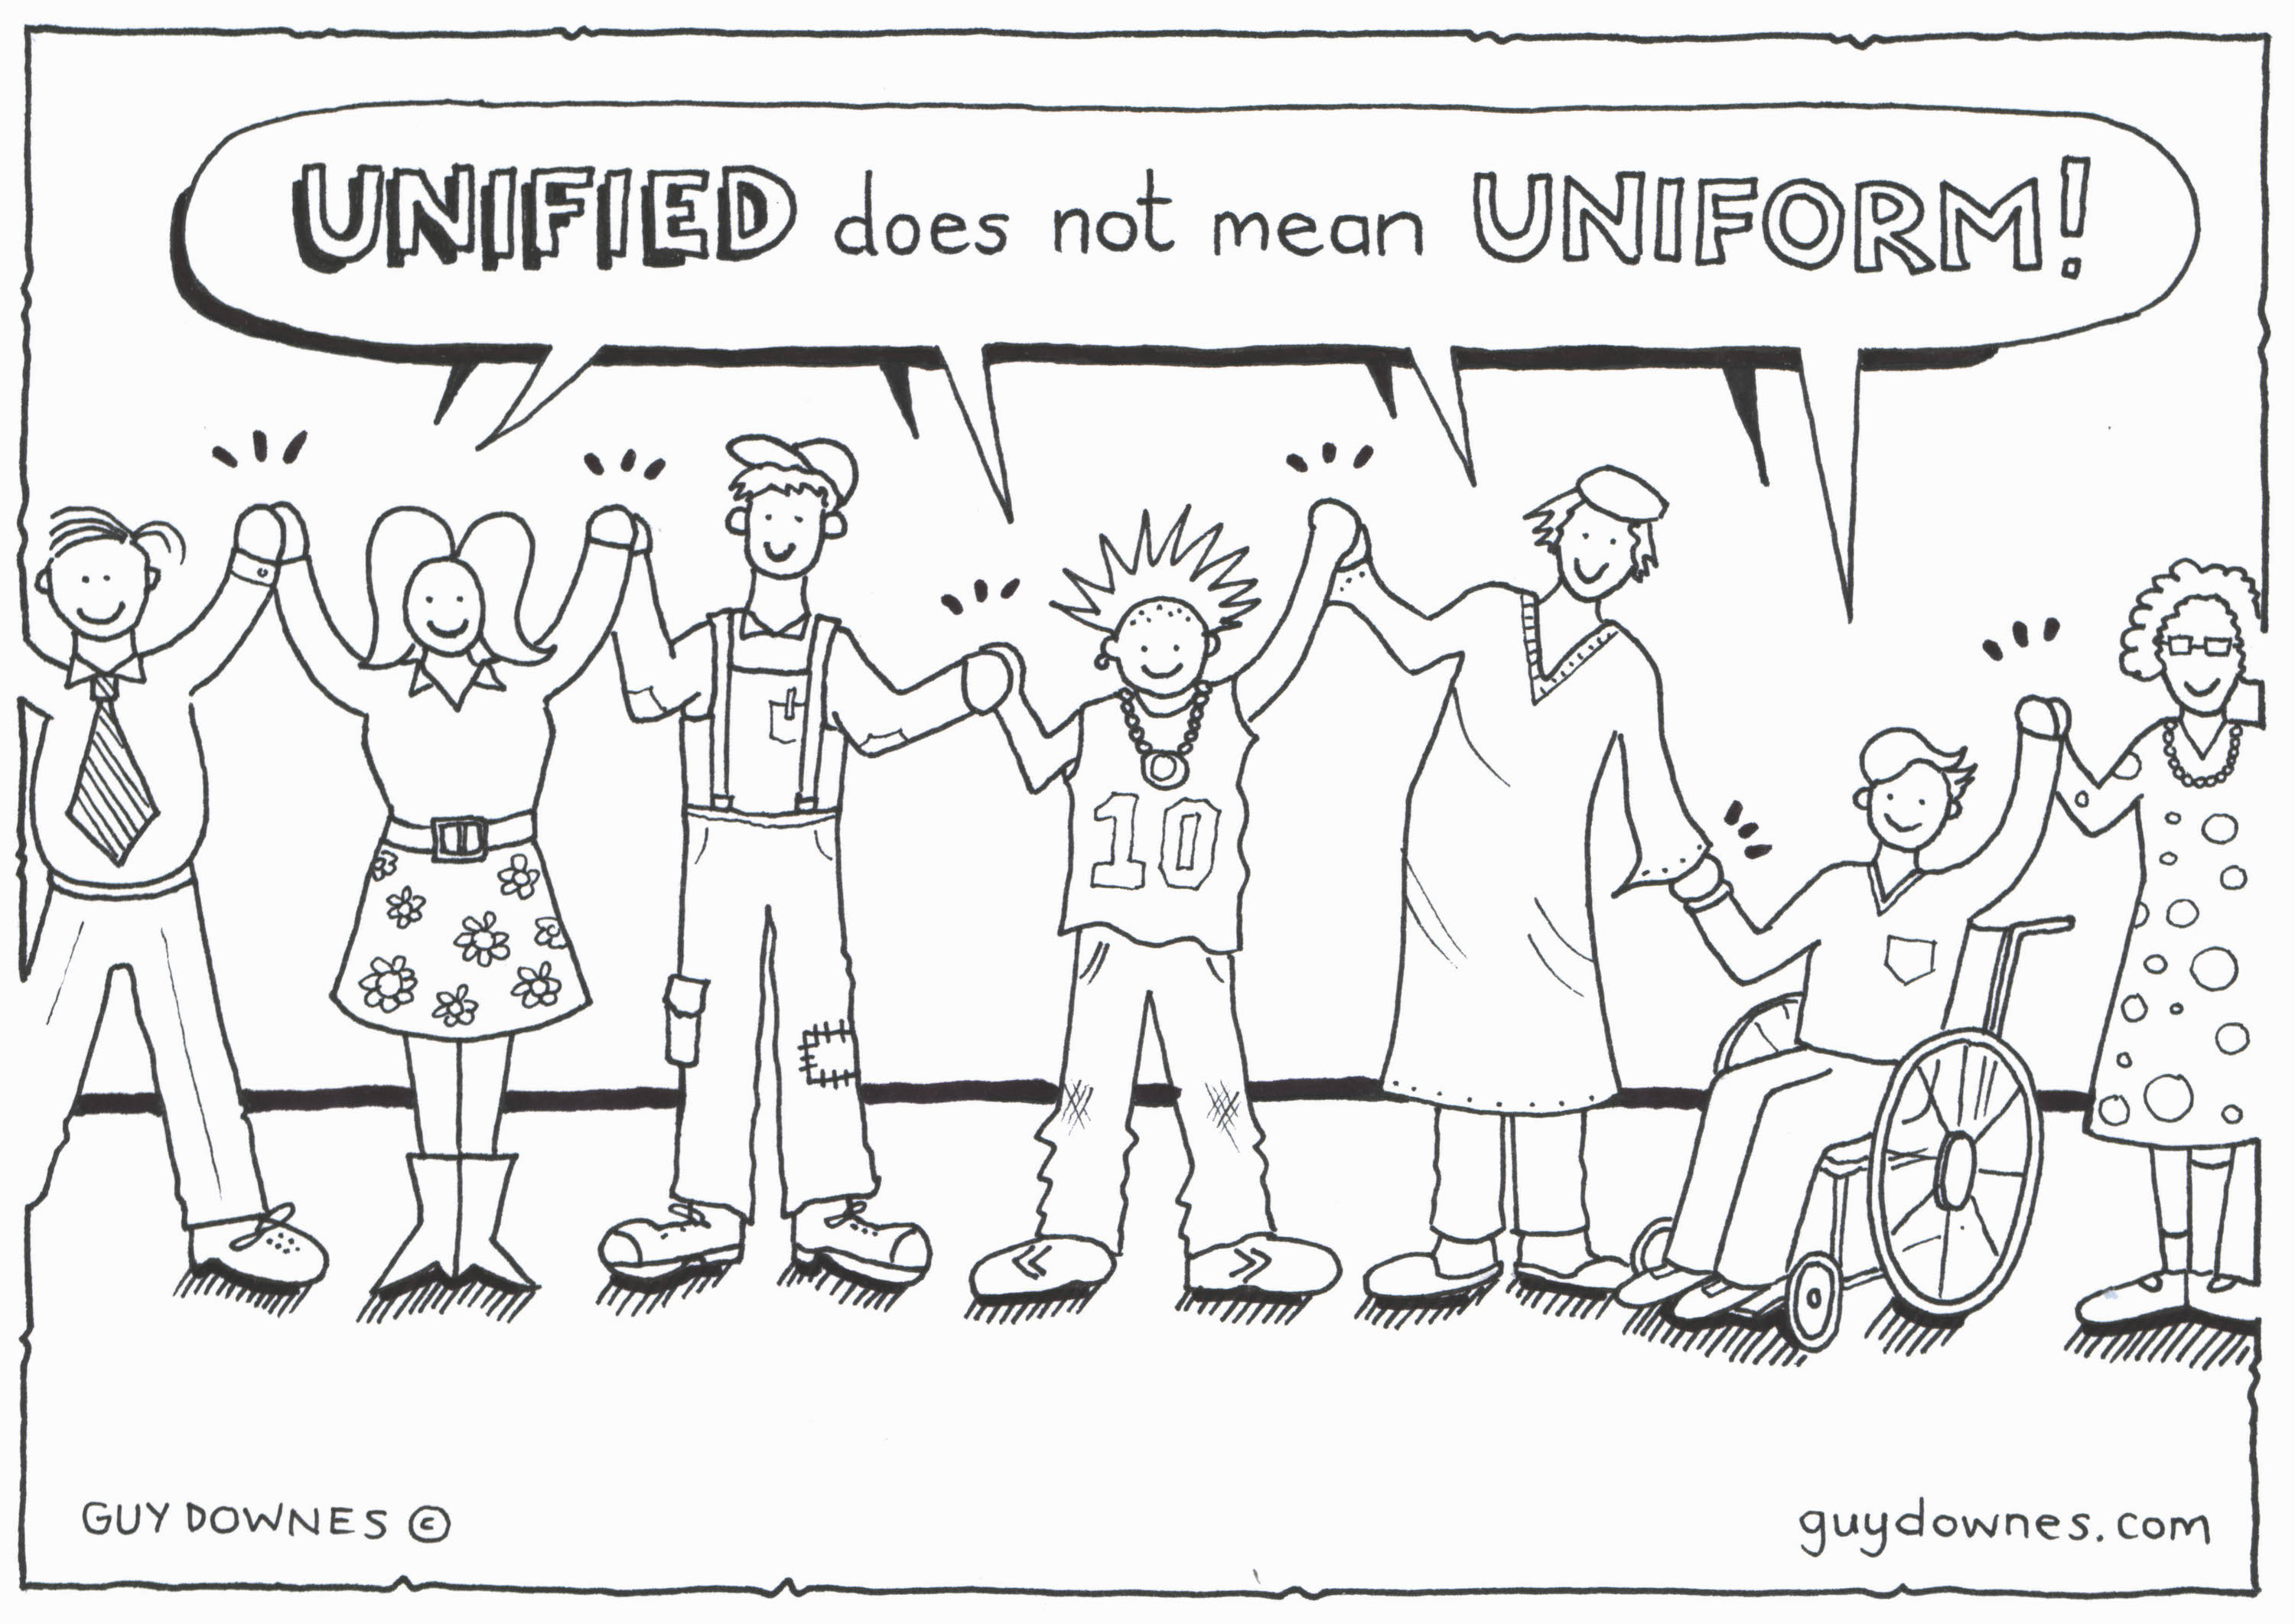 Unified does not mean Uniform